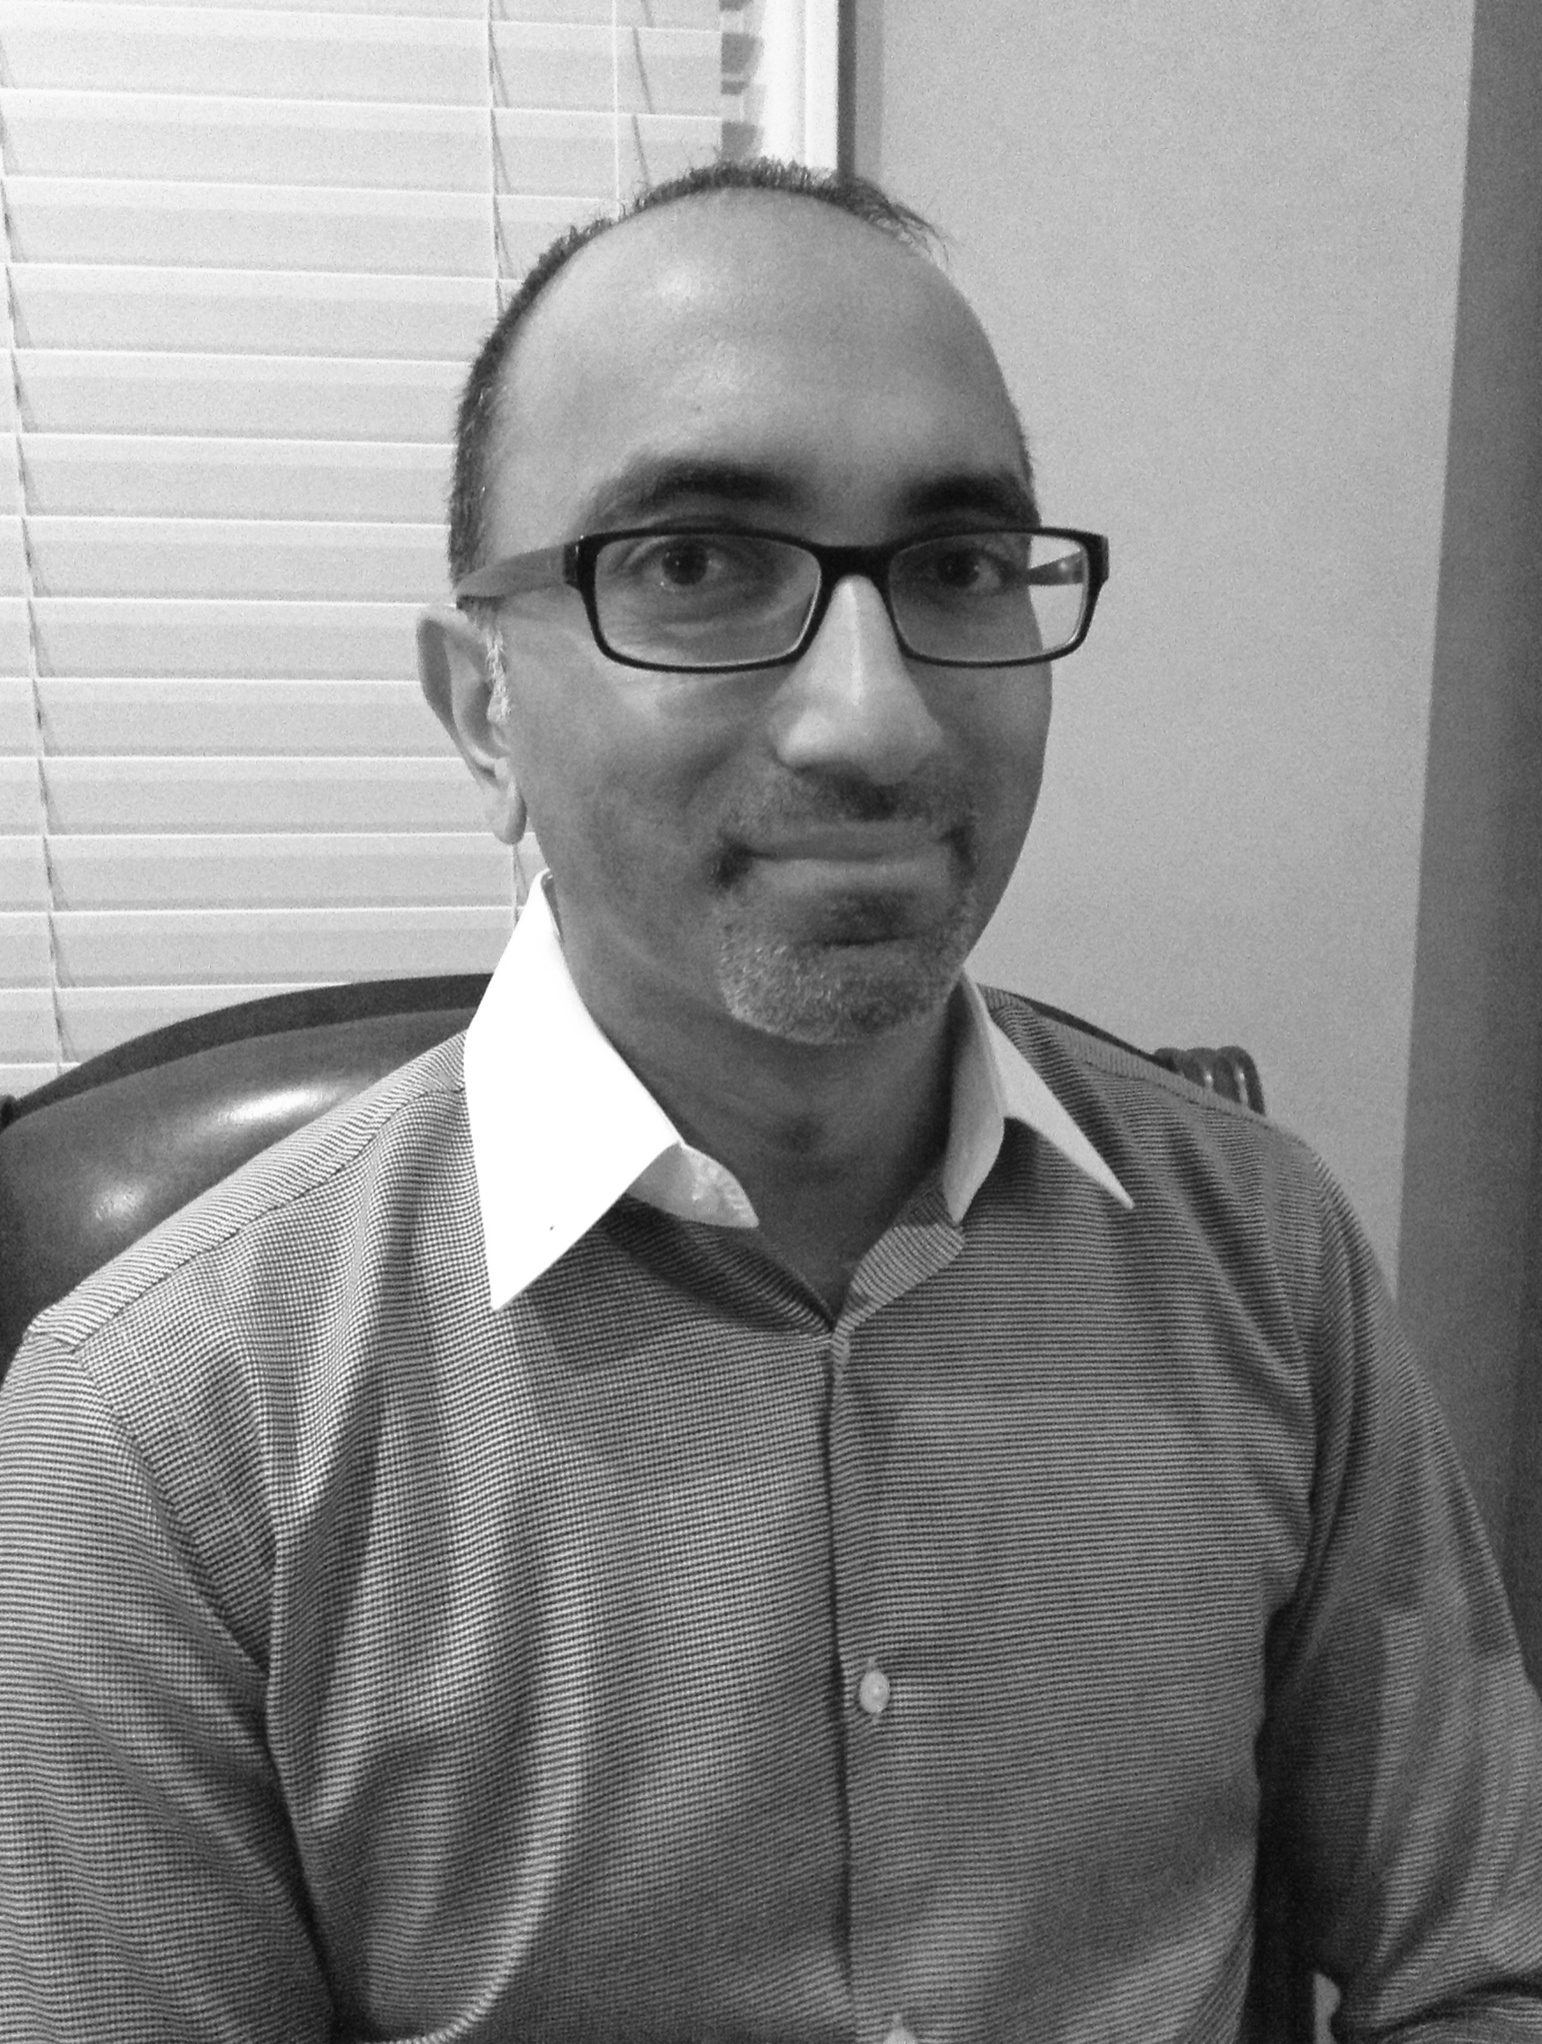 """Vik Reddy is a practicing plastic surgeon and a regular contributor to the *Detroit Free Press*. He serves as the Medical Director of Quality at Henry Ford Macomb Hospital. Read his piece, """" Stuck """" in the Spring 2015 Intima."""